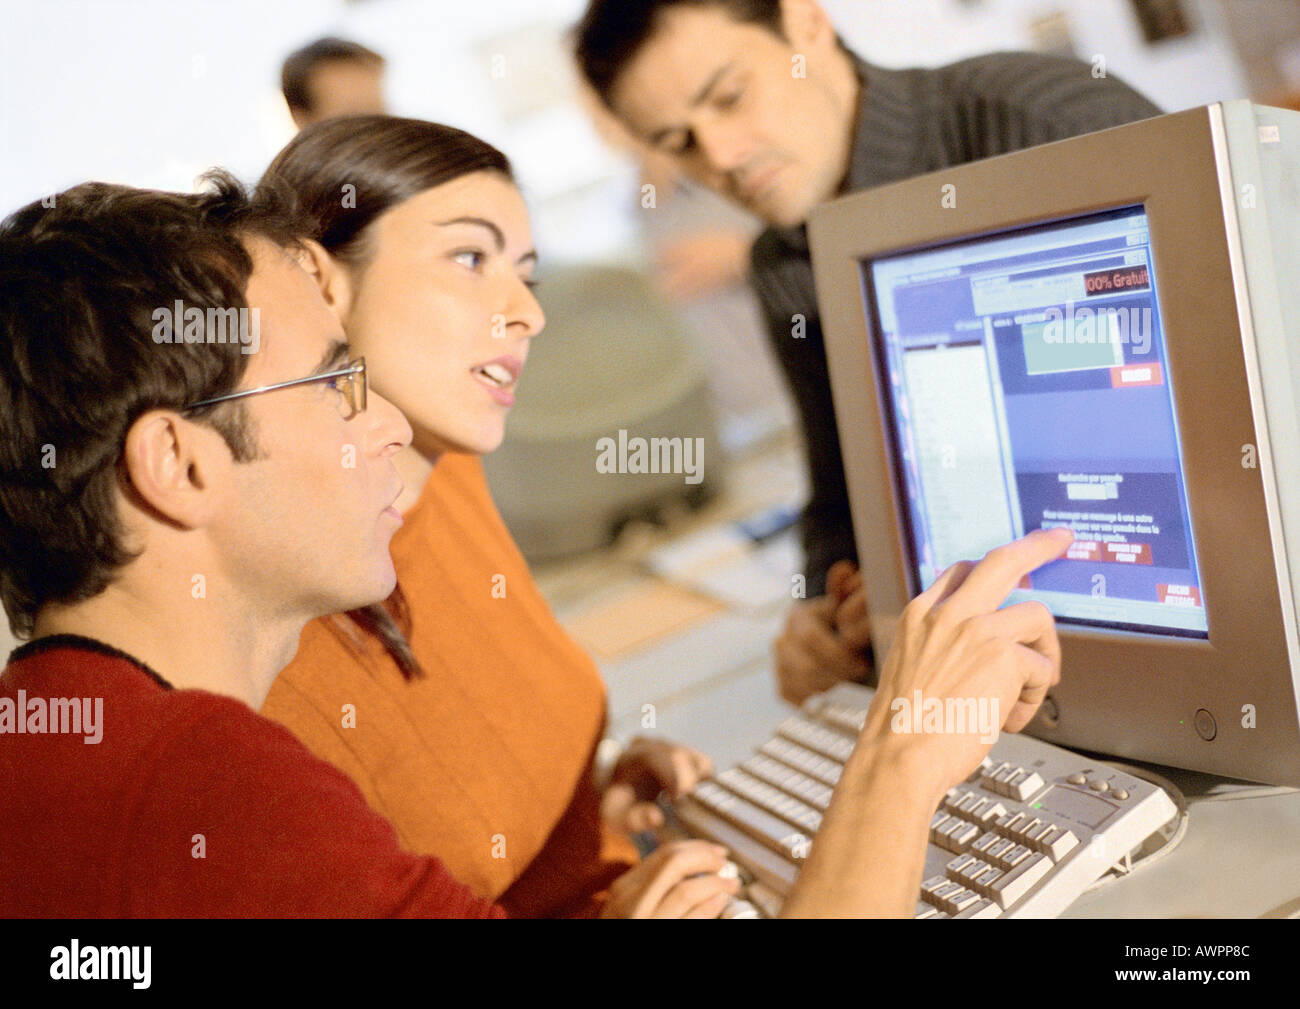 People working in office, close-up - Stock Image